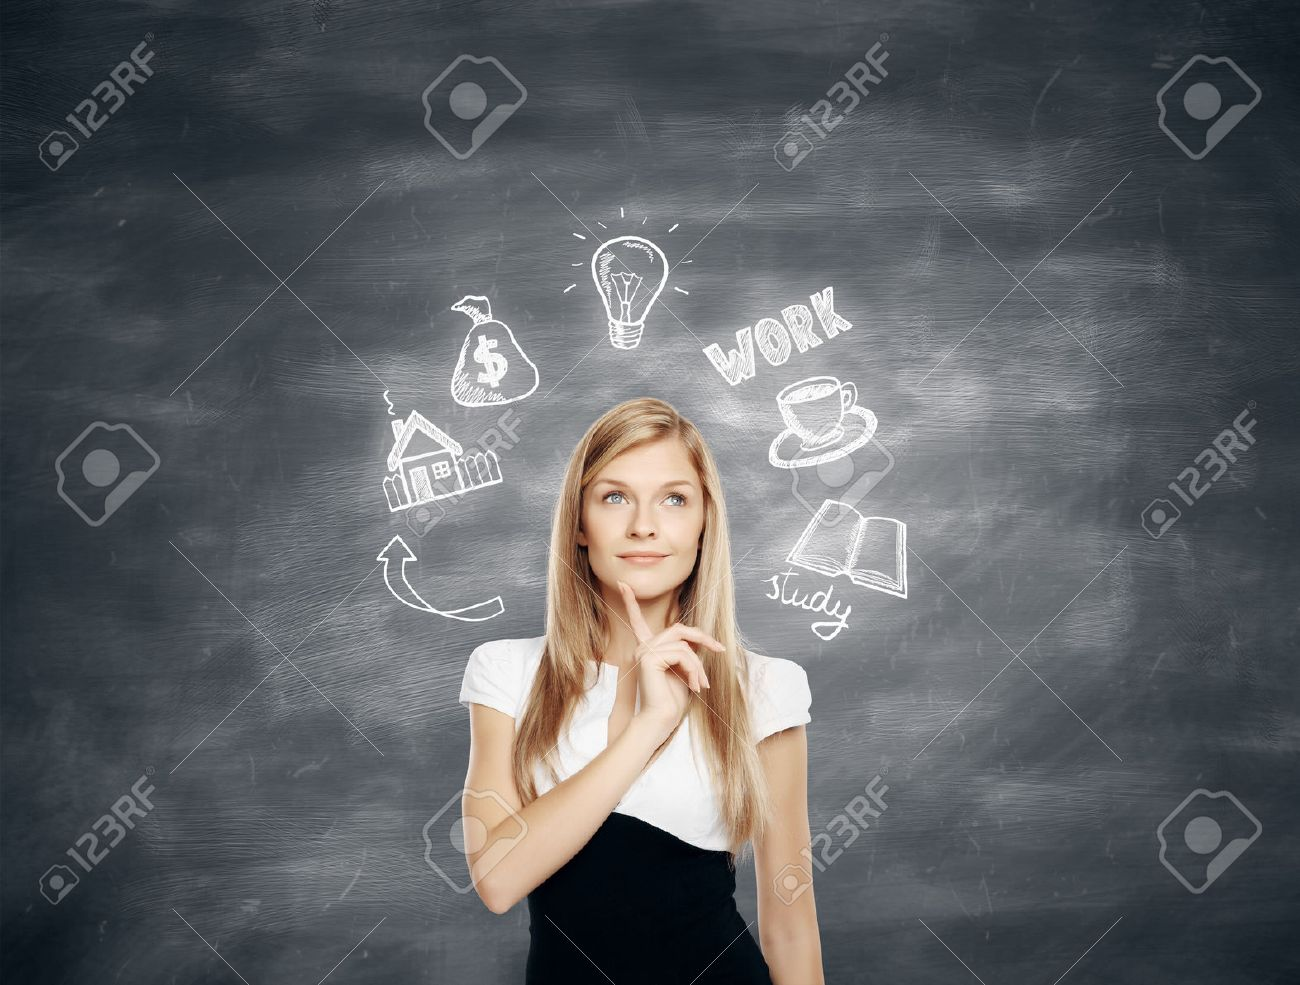 Pensive young business woman thinking about future job, education and financial growth on chalkboard background Standard-Bild - 61611008